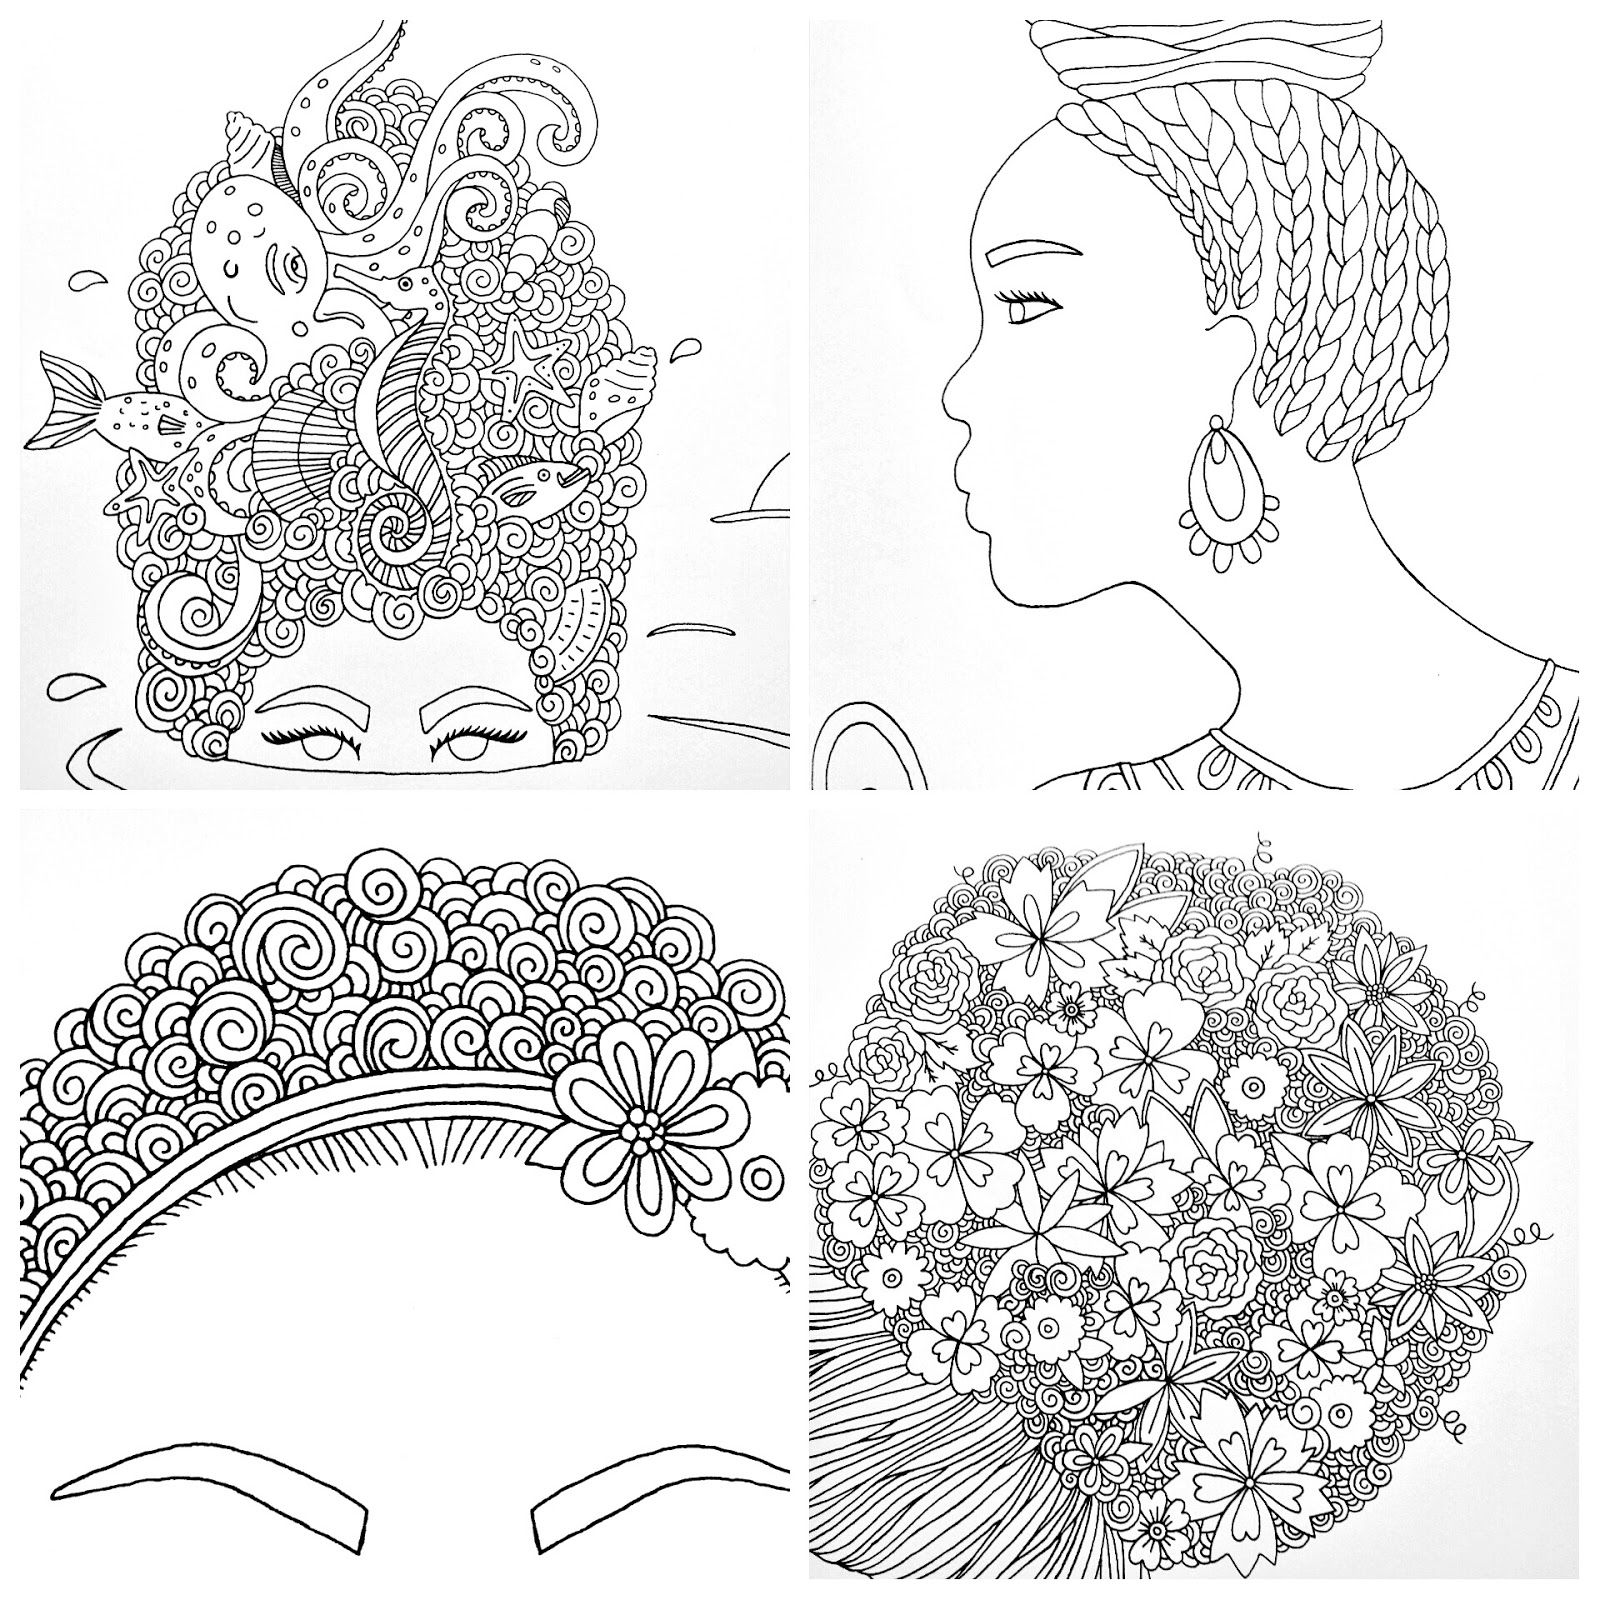 I Love My Hair A Coloring Book Of Braids Coils And Doodle Dos By Andrea Pippins Matrix Color Chart Coloring Pages Girl Hair Colors